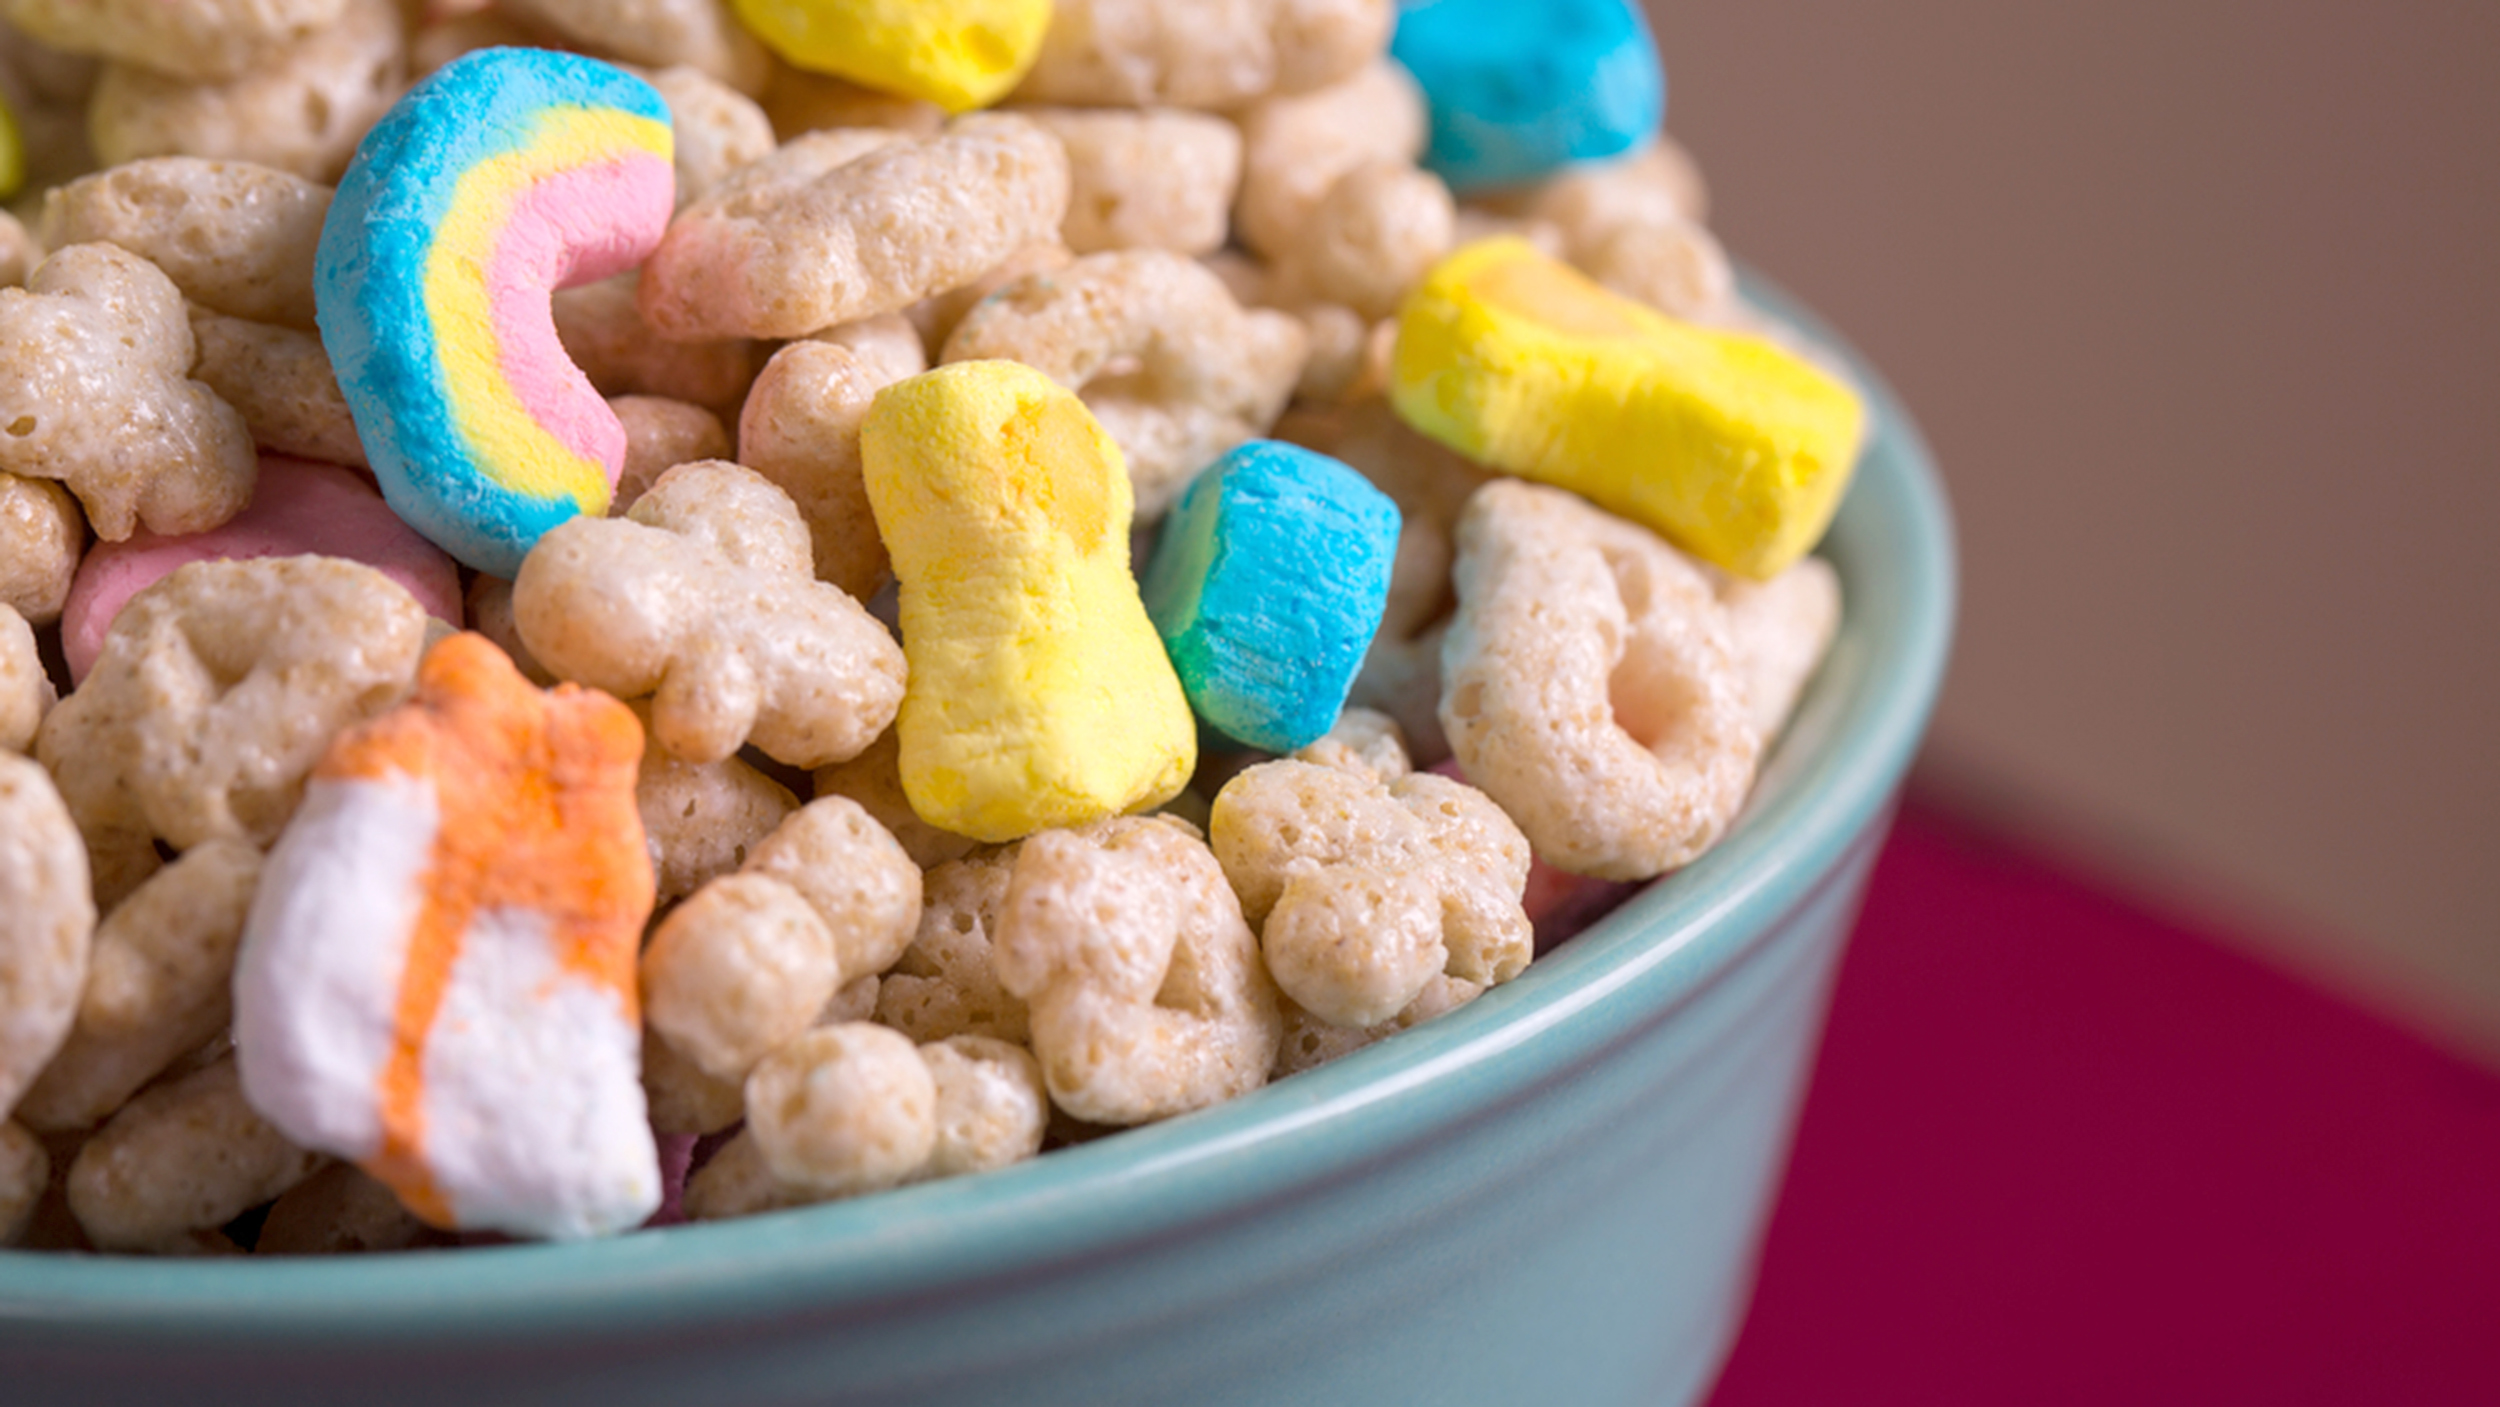 You can buy marshmallow only boxes of lucky charms ccuart Images